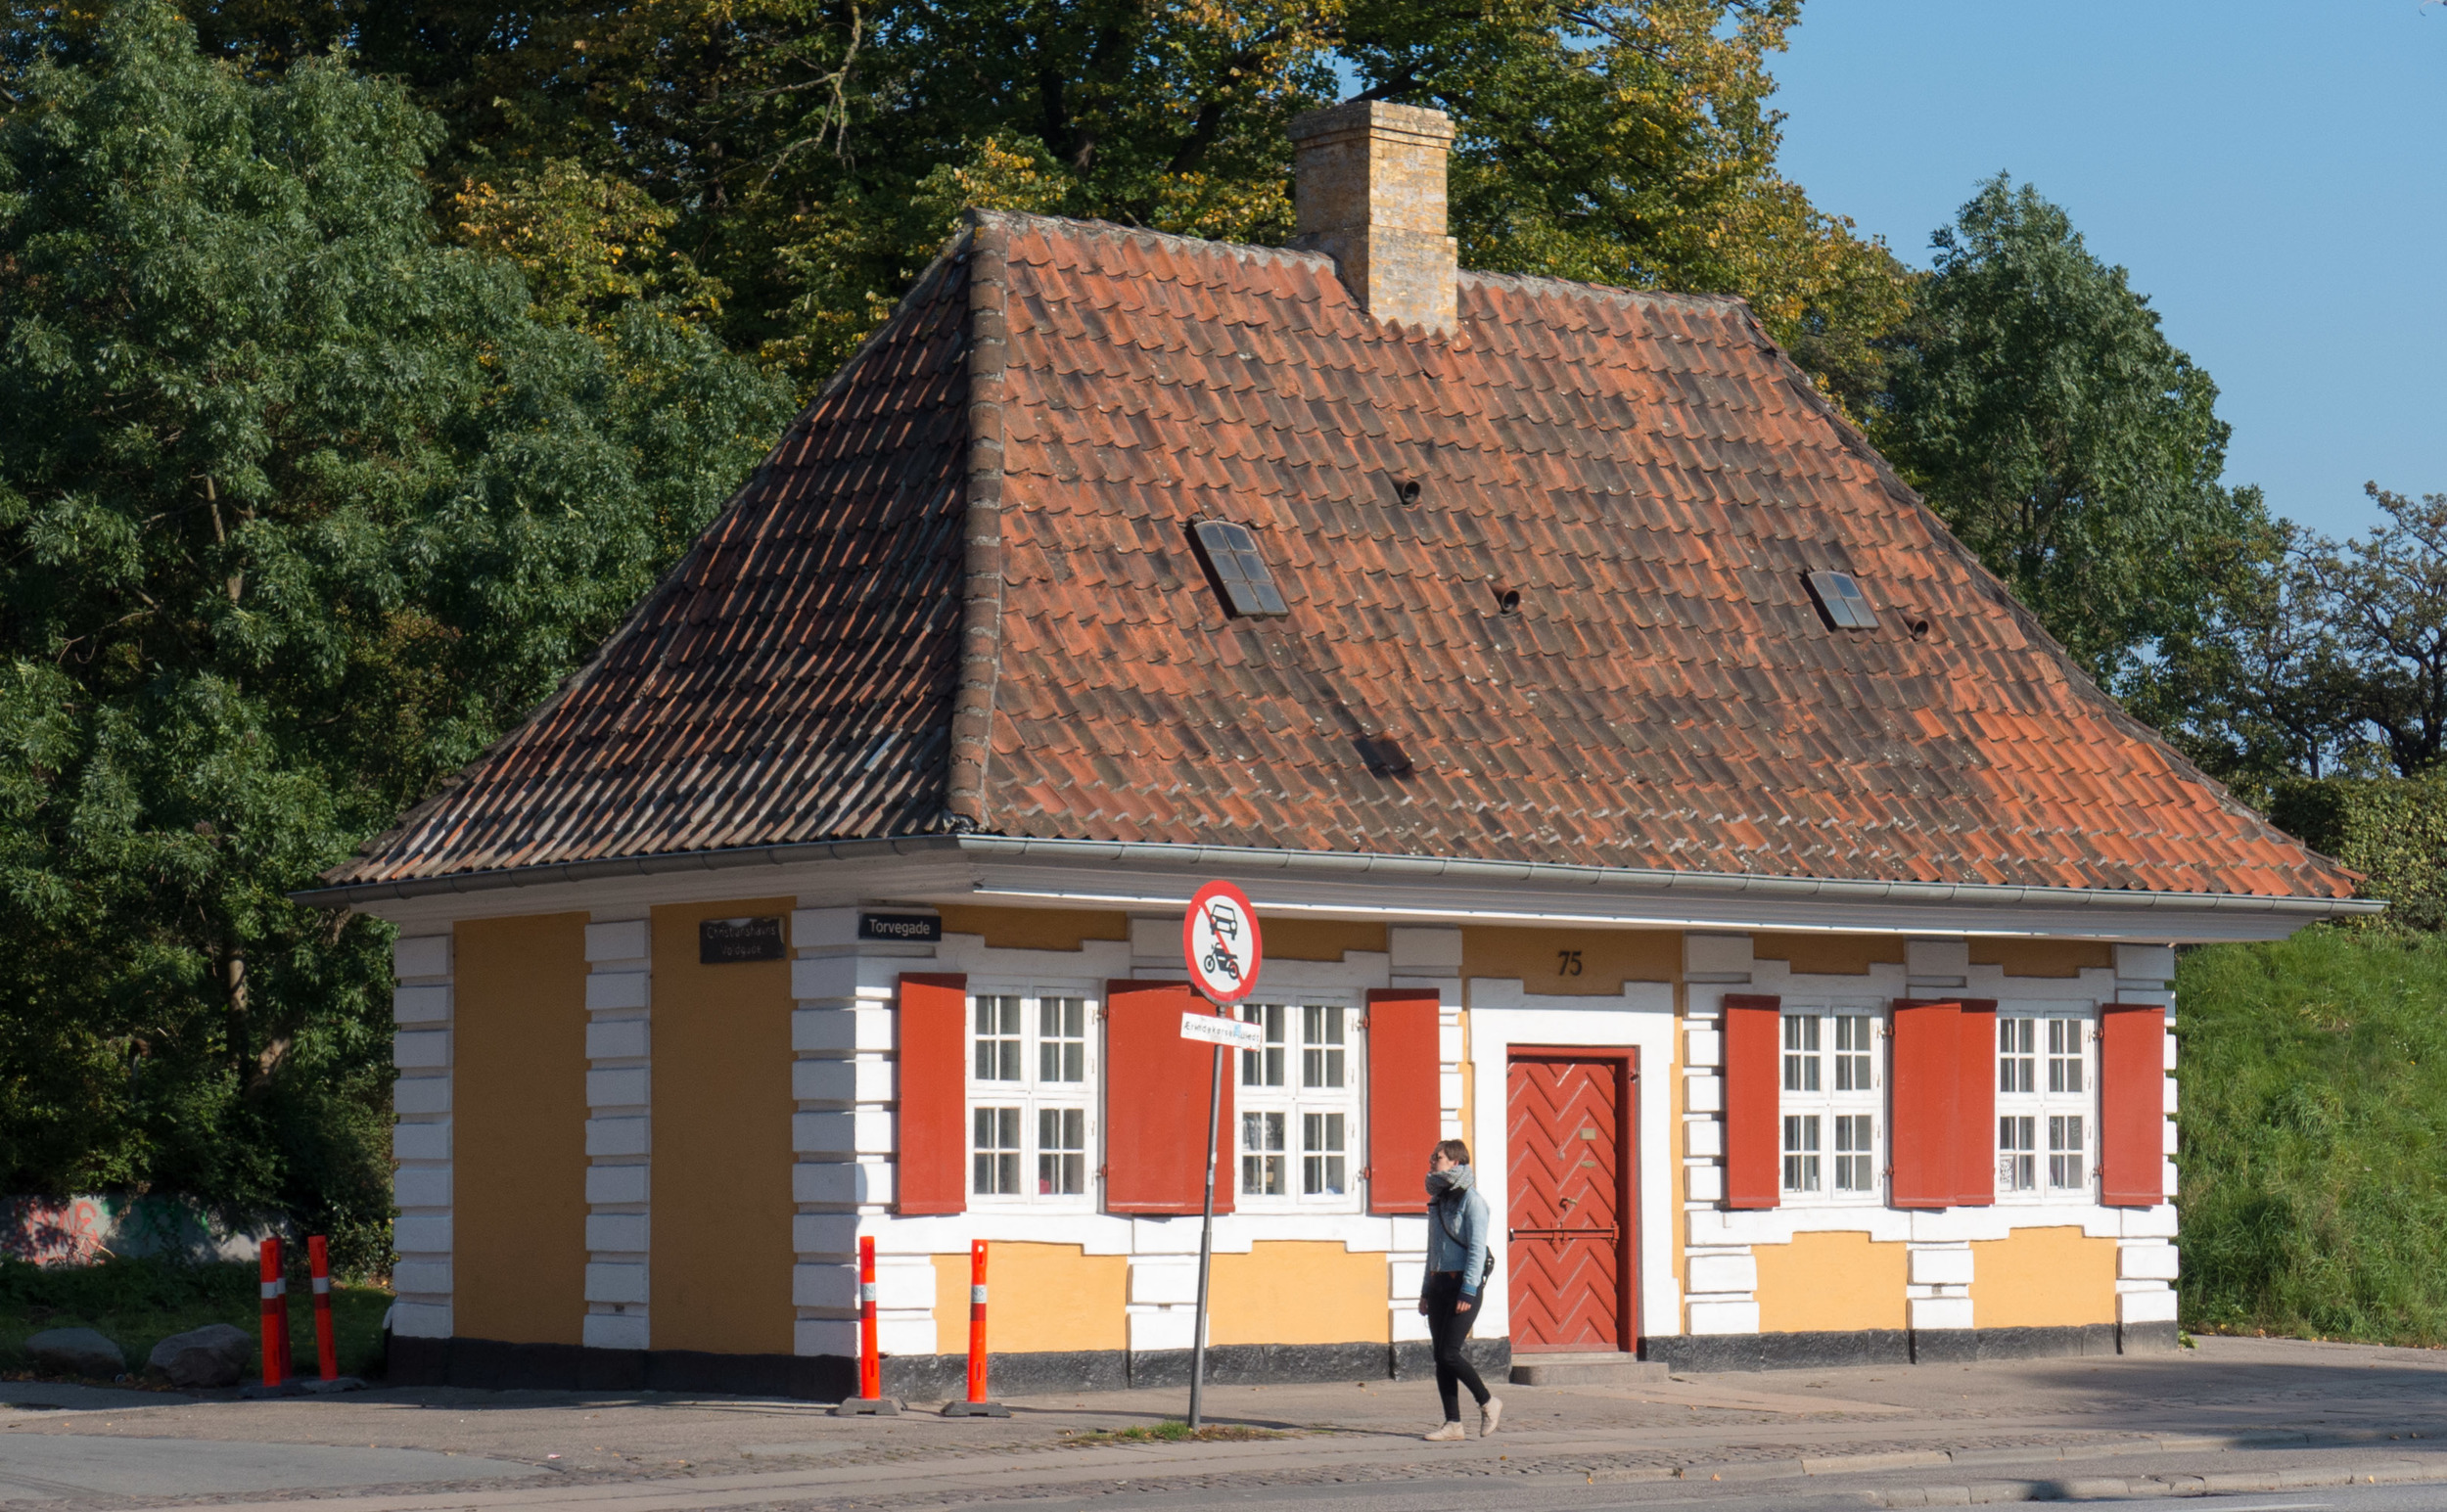 On the east side of Torvegade, just inside the south embankment, is the Customs House built in 1724 on the city side of Amagerport.